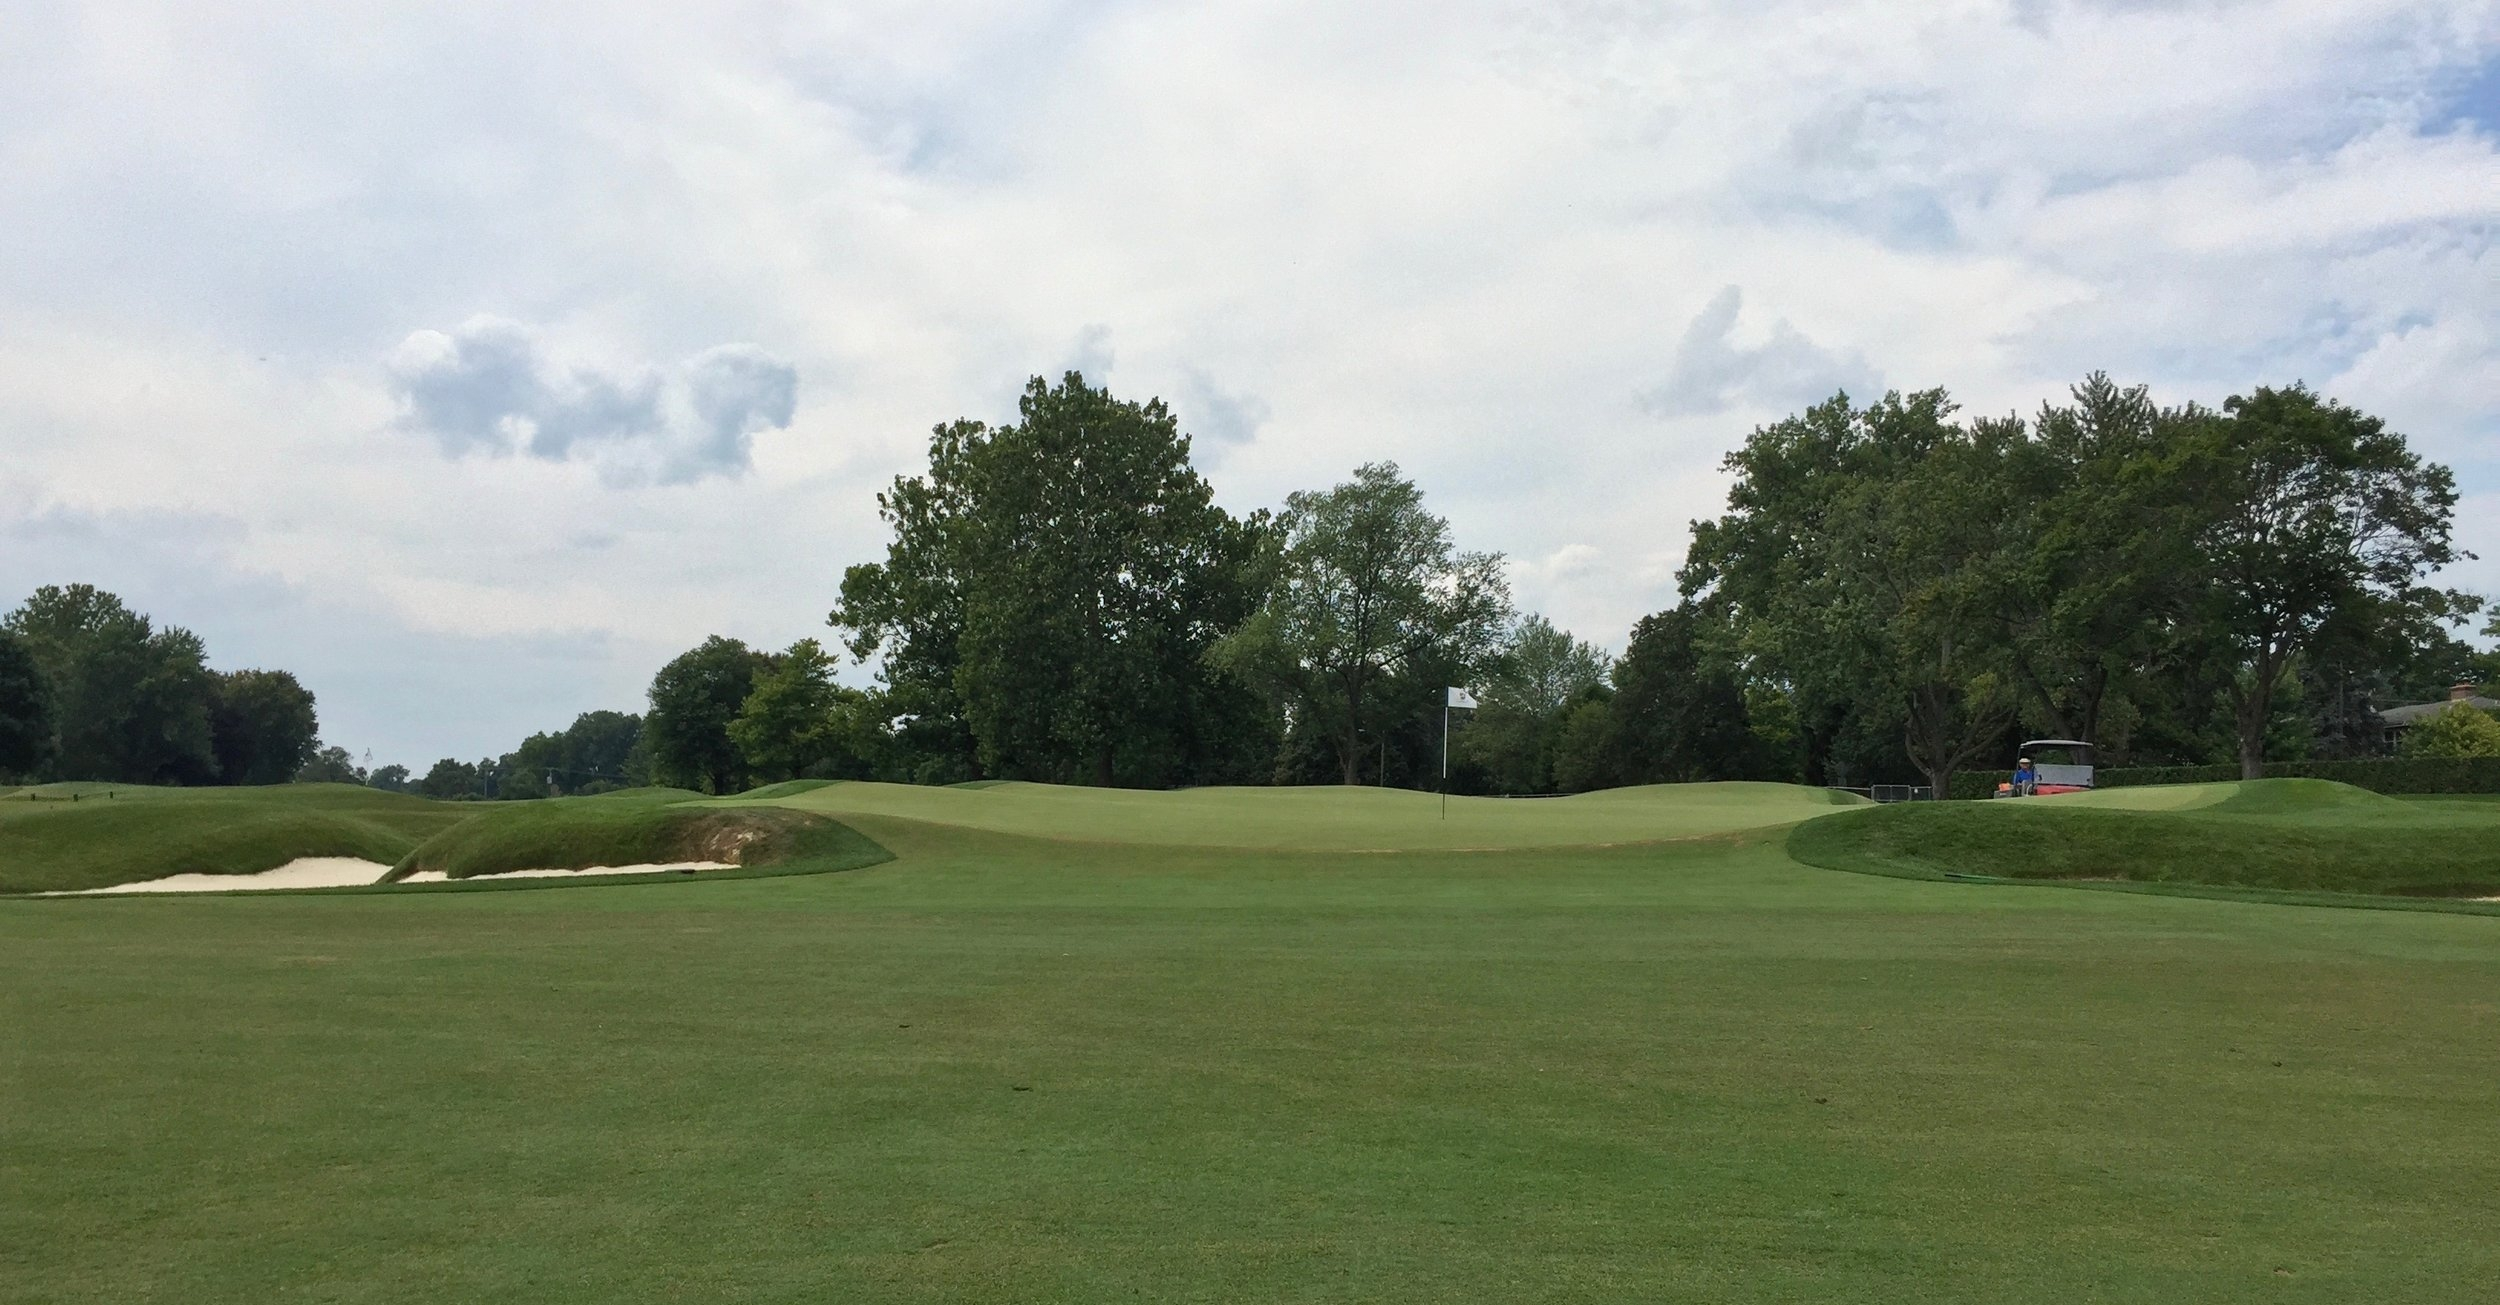 A number of the greens complexes at Birmingham have these wings and rolls not quite like anything I've ever seen, and Bruce Hepner brought the putting surface right out to the very edges in his recent restoration.